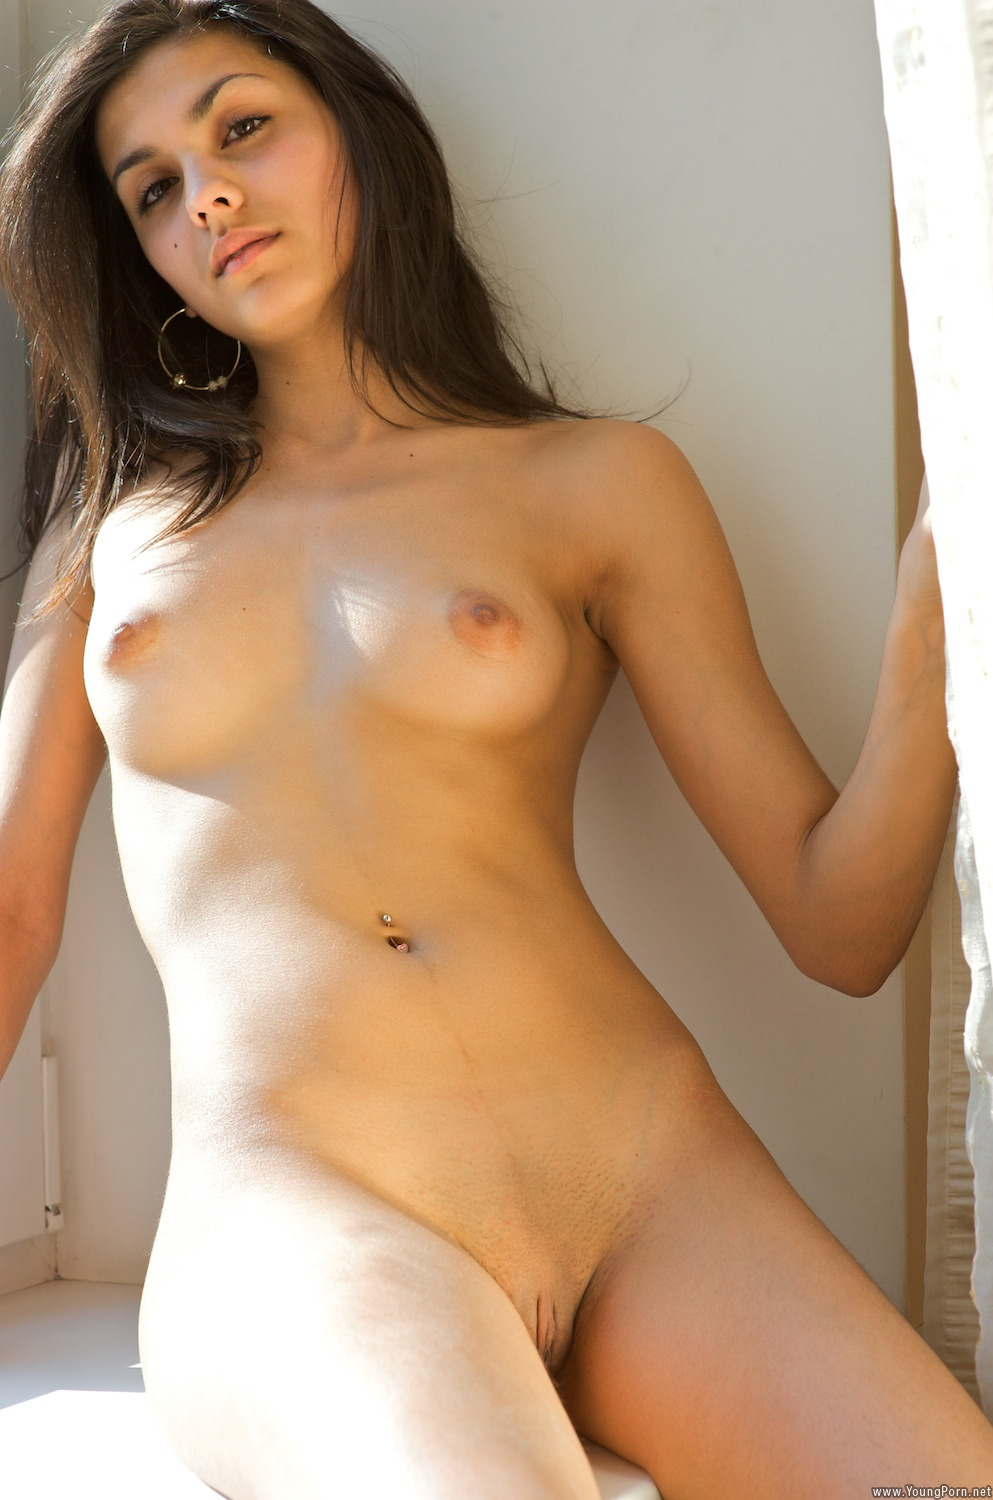 photos of hot nude women